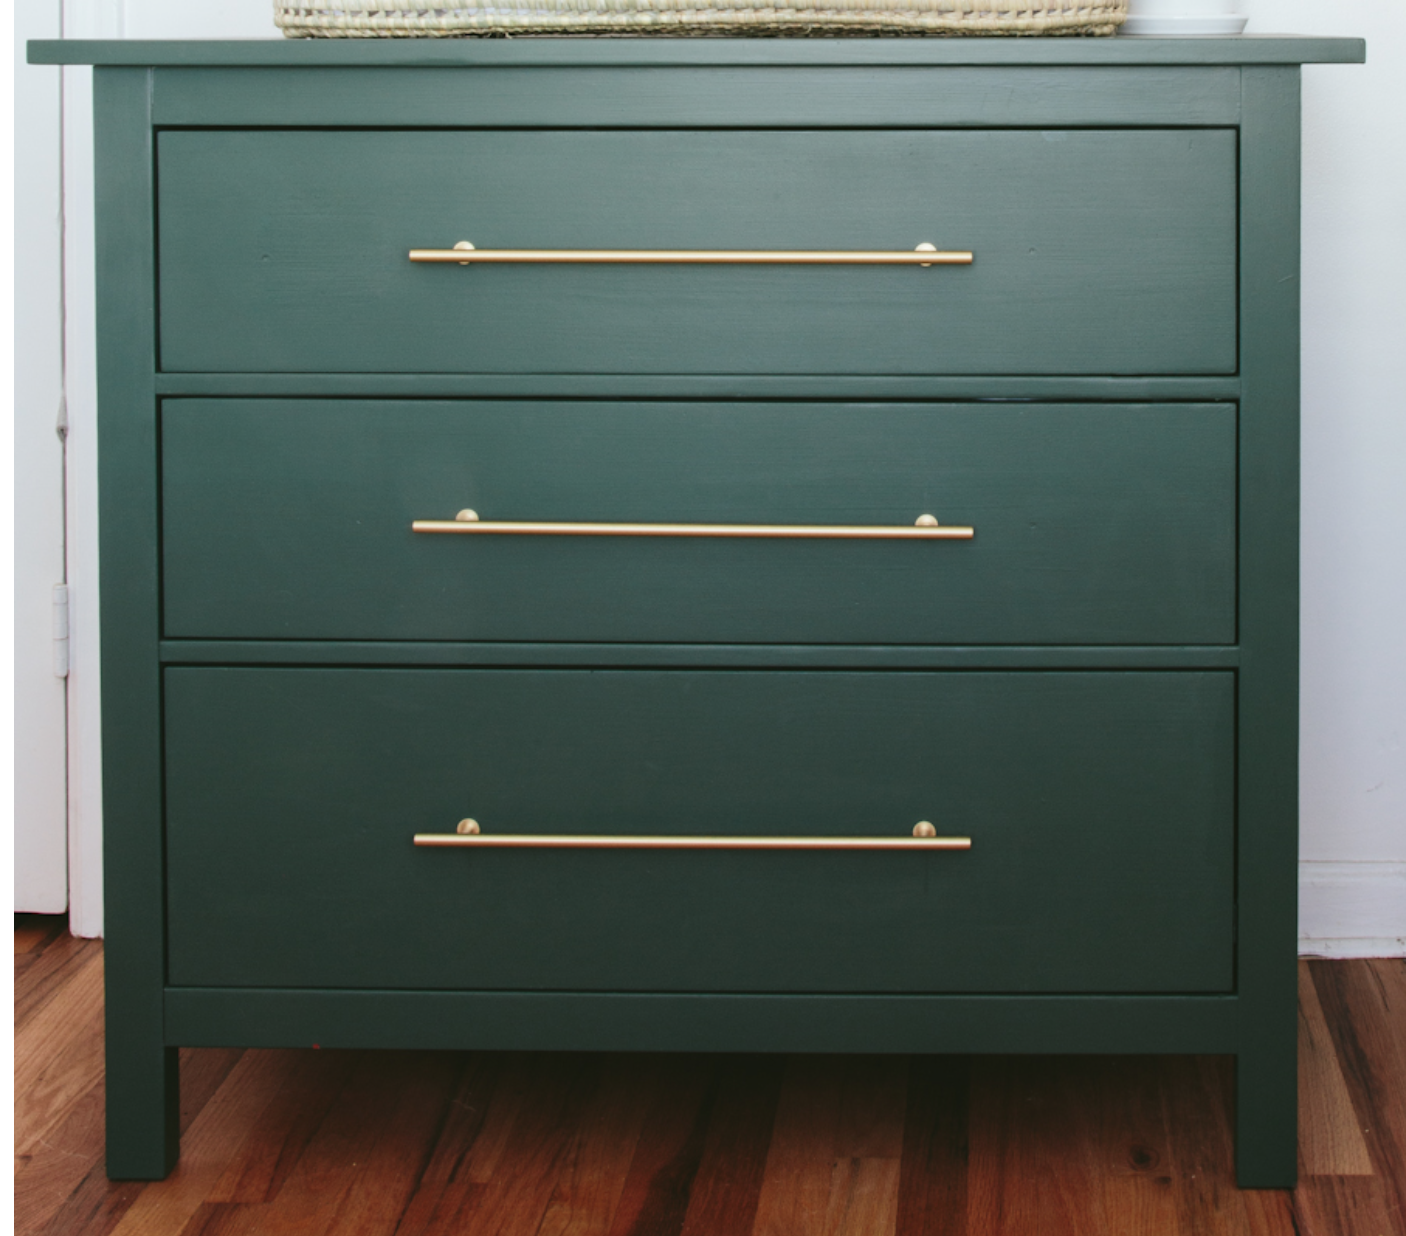 COLOR OF PAINTED DRESSER